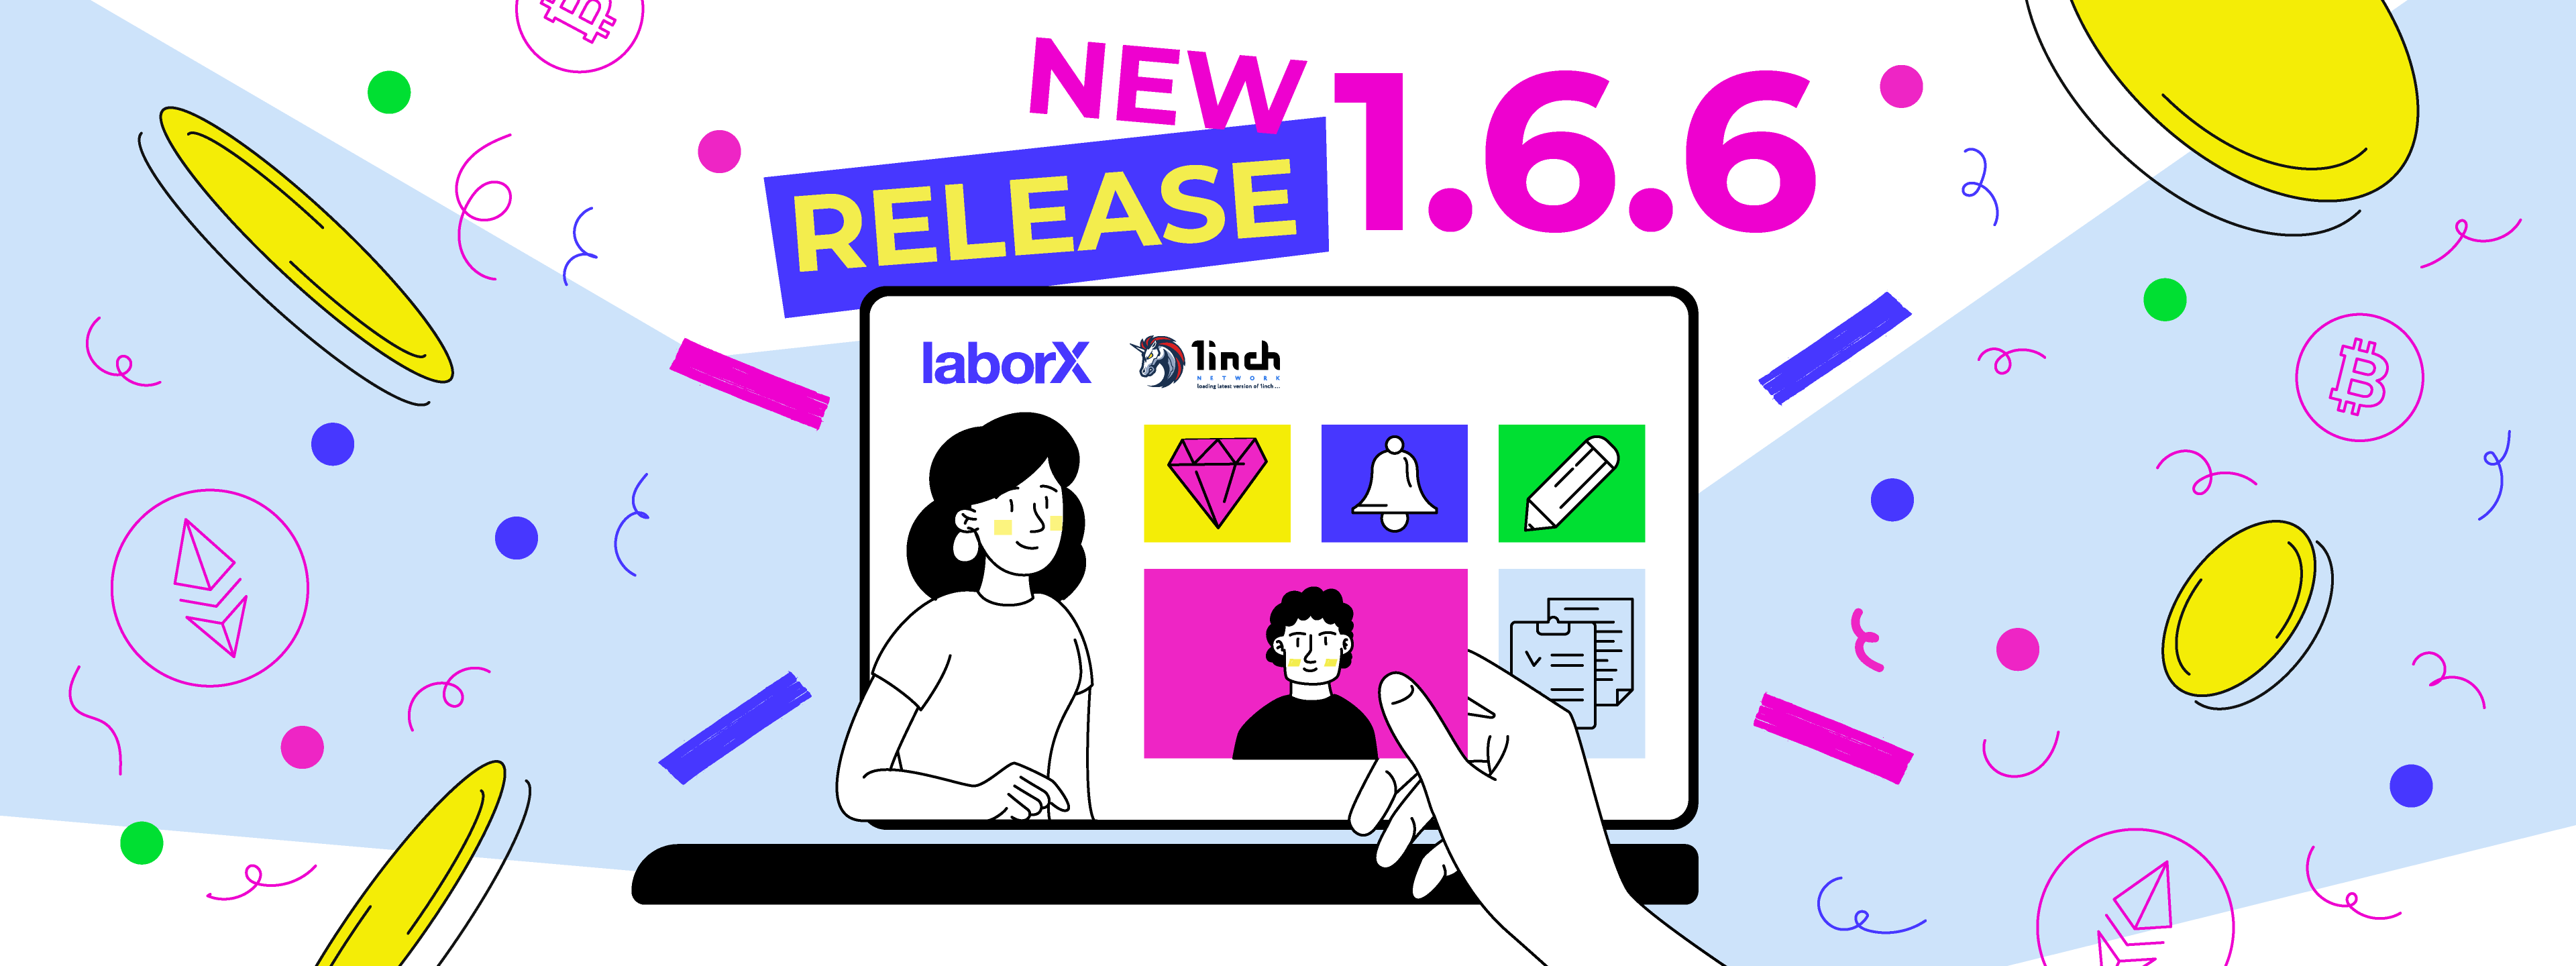 What's new in LaborX release 1.6.6?